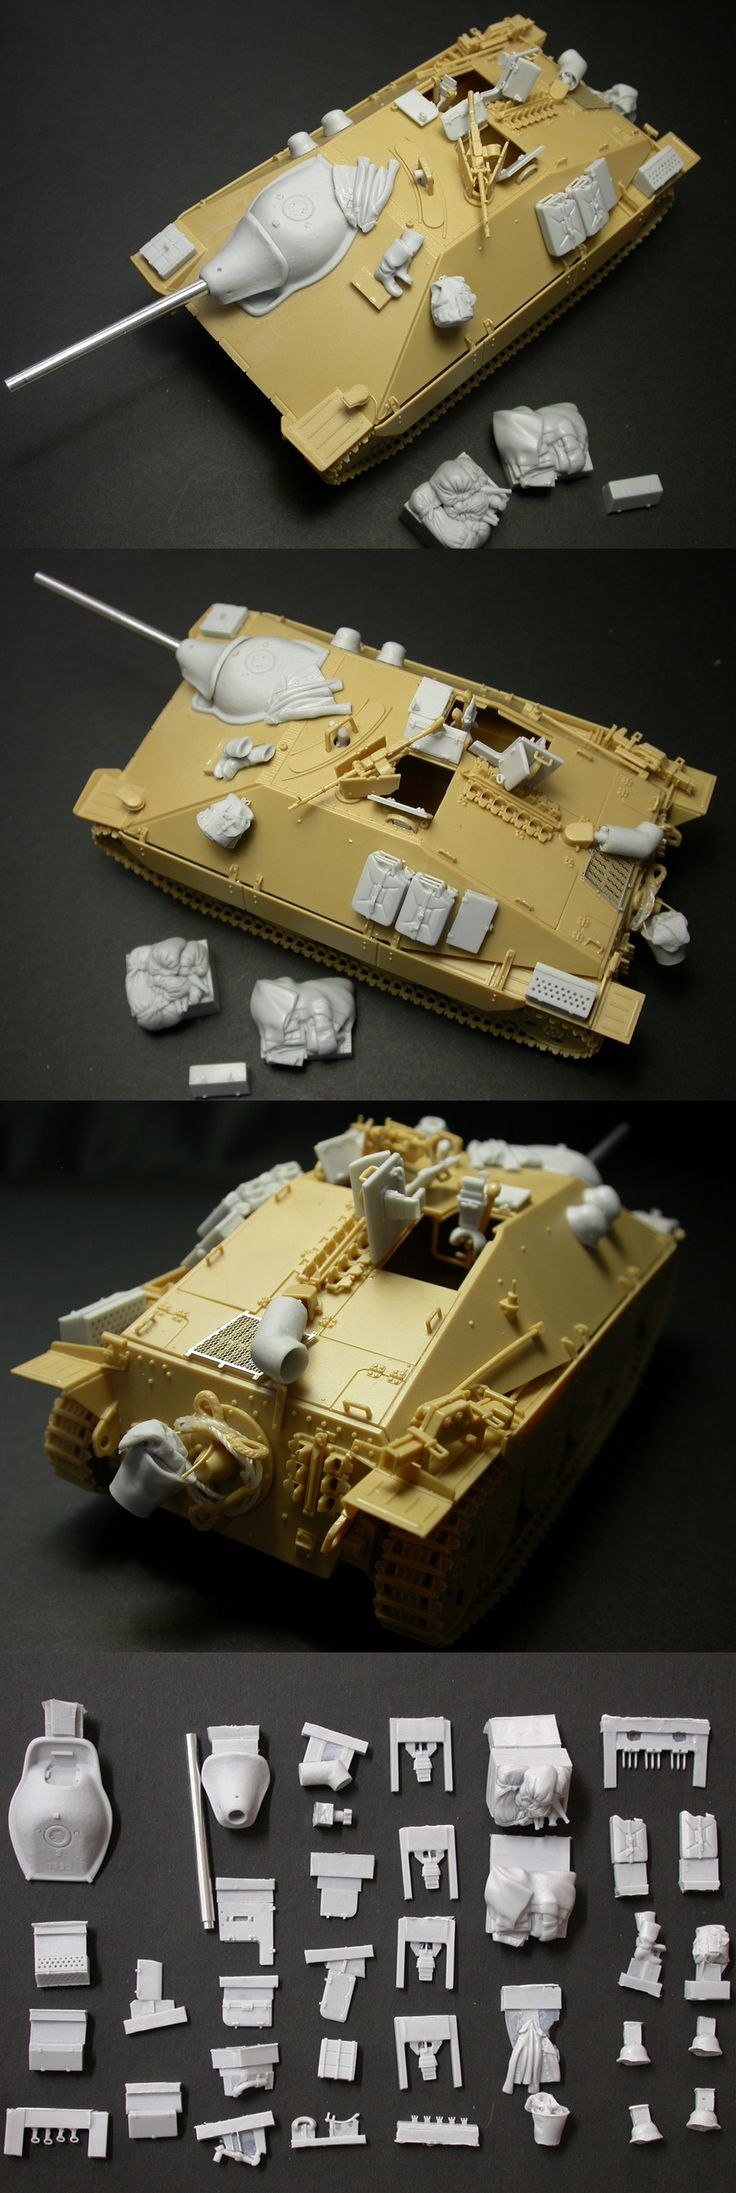 1/35 resincast model WWII German Jagdpanzer 38(t) Hetzer Late Ver. Detail Up (for Academy)